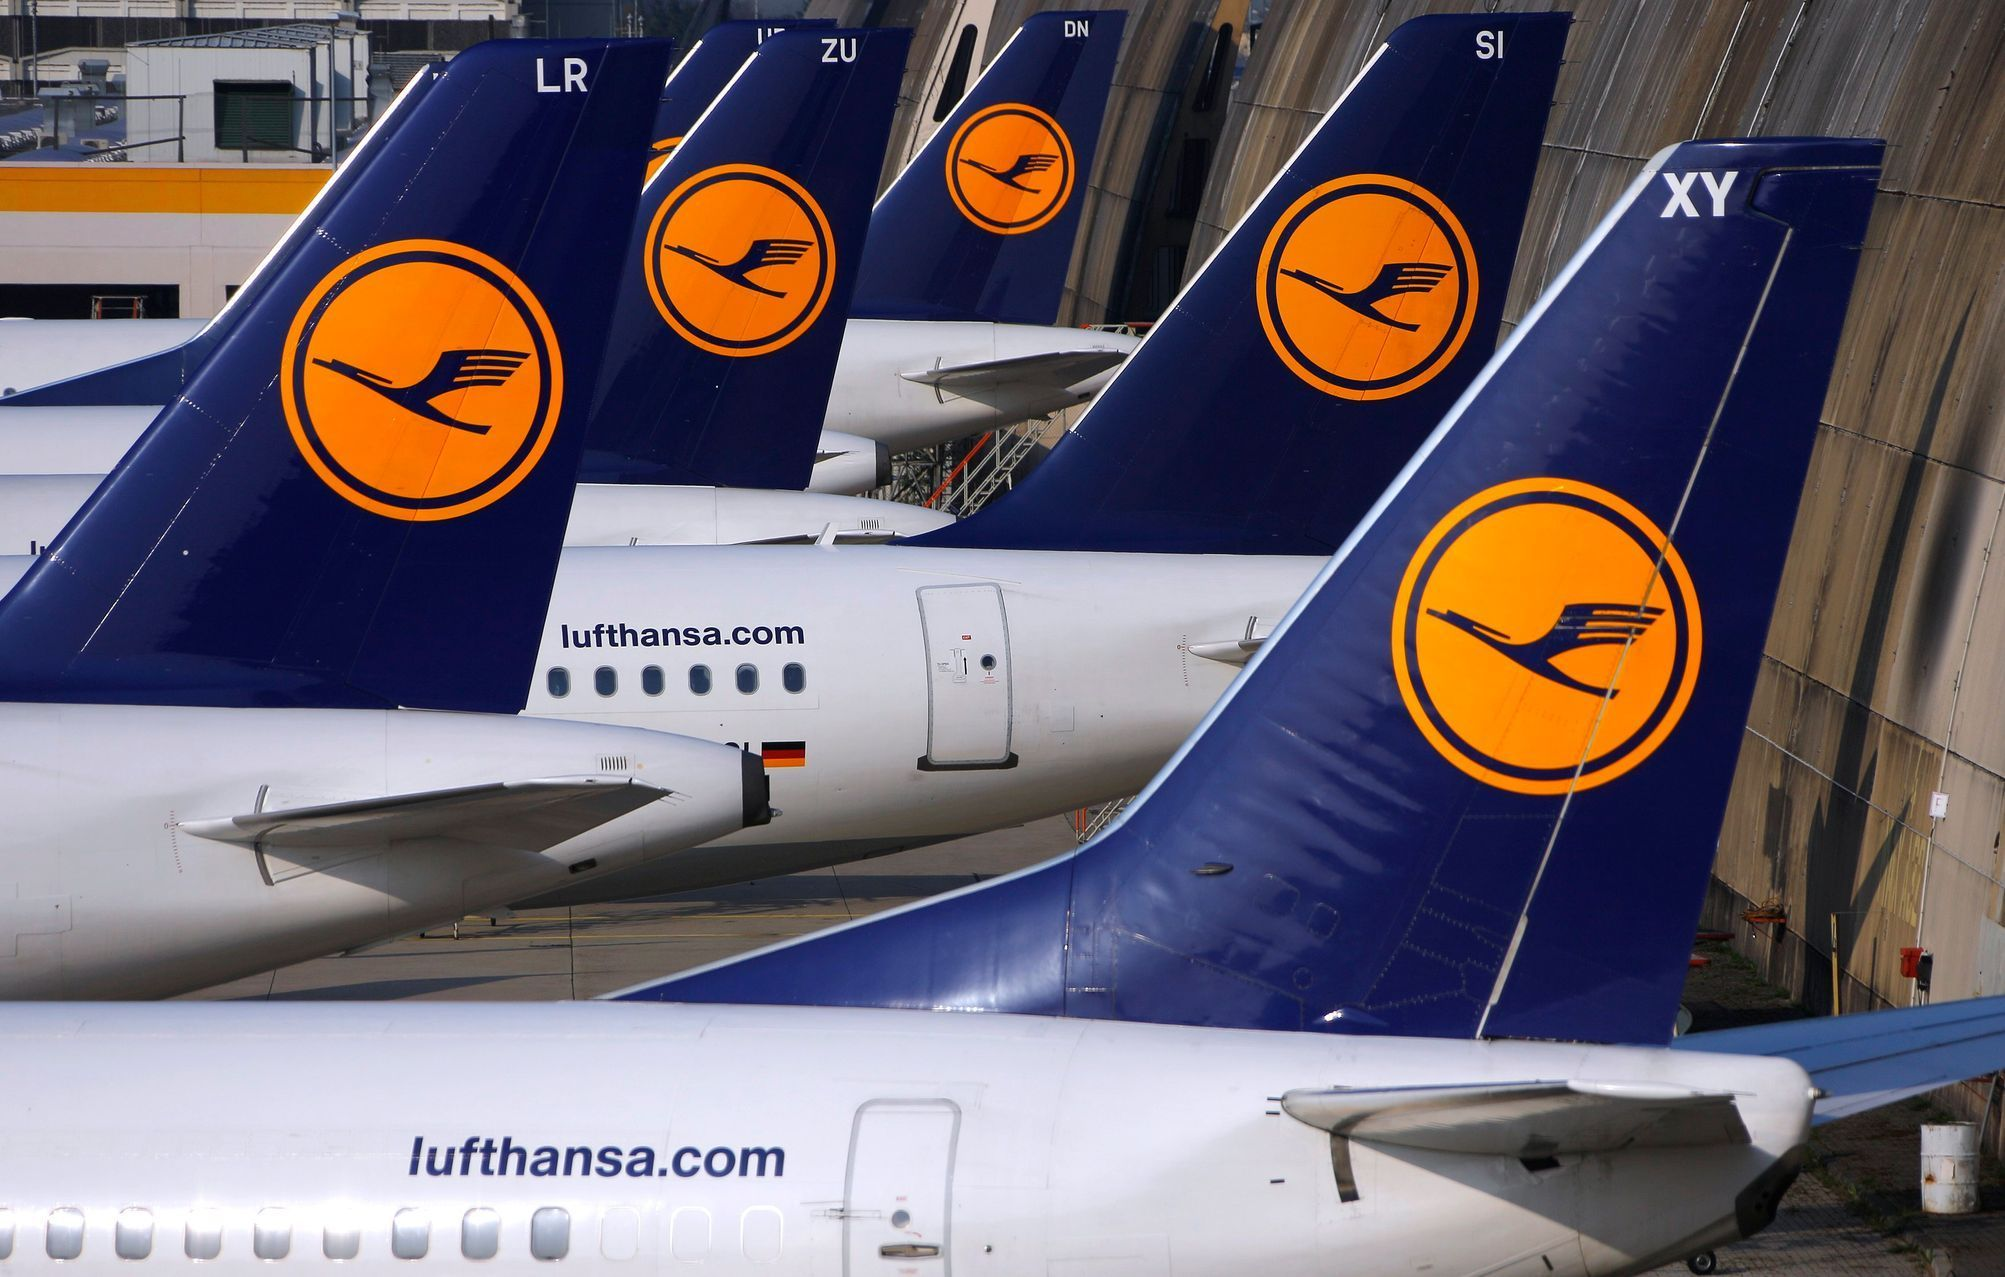 Aircraft of German airline Lufthansa are parked on the apron at Fraport airport in Frankfurt